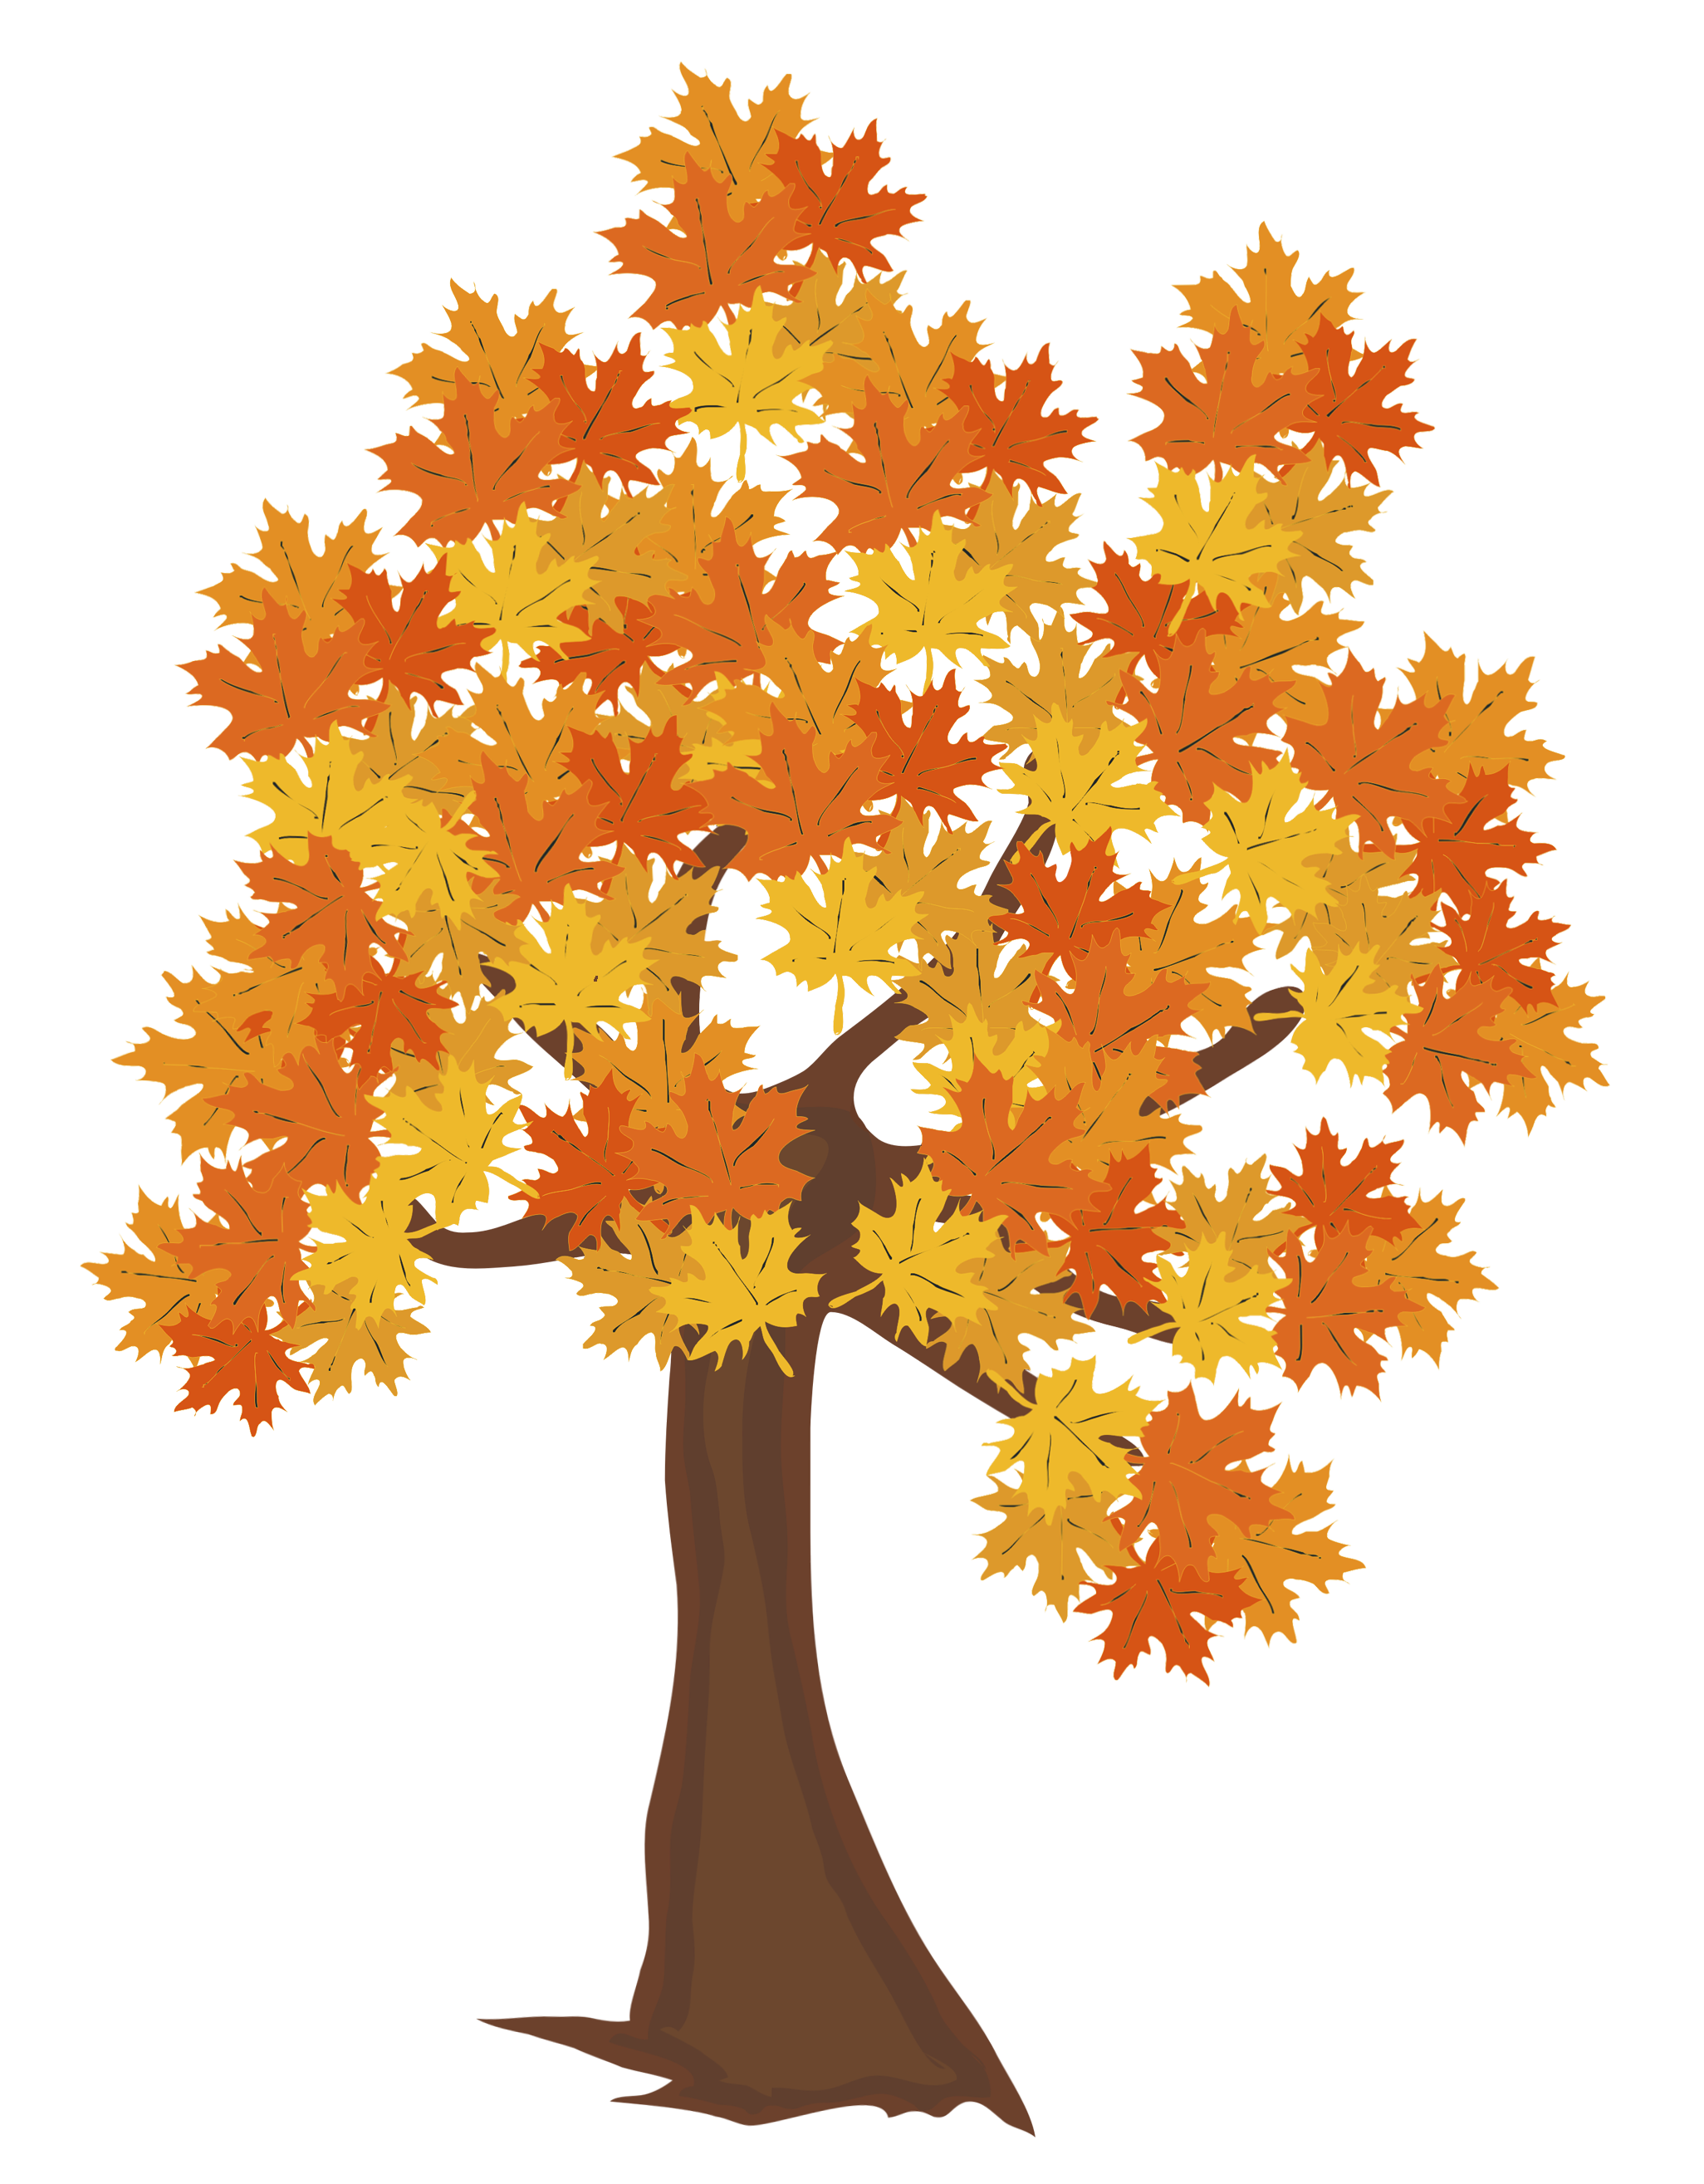 Fall tree image gallery yopriceville high quality images png